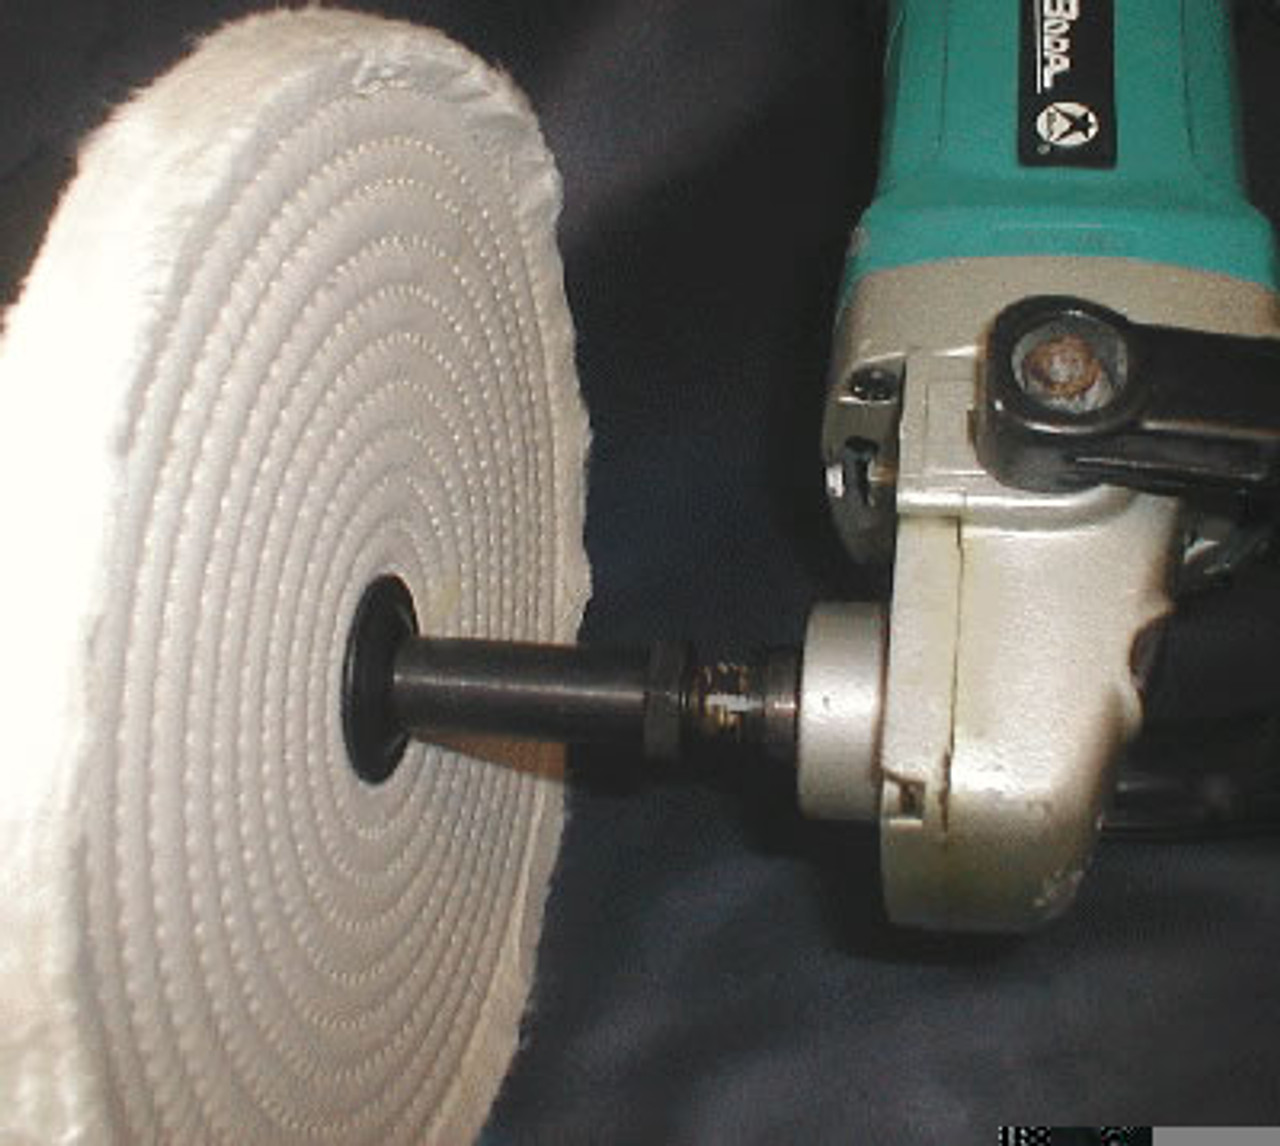 GRINDER/BUFFER ADAPTER 5/8-11 TO 1/2